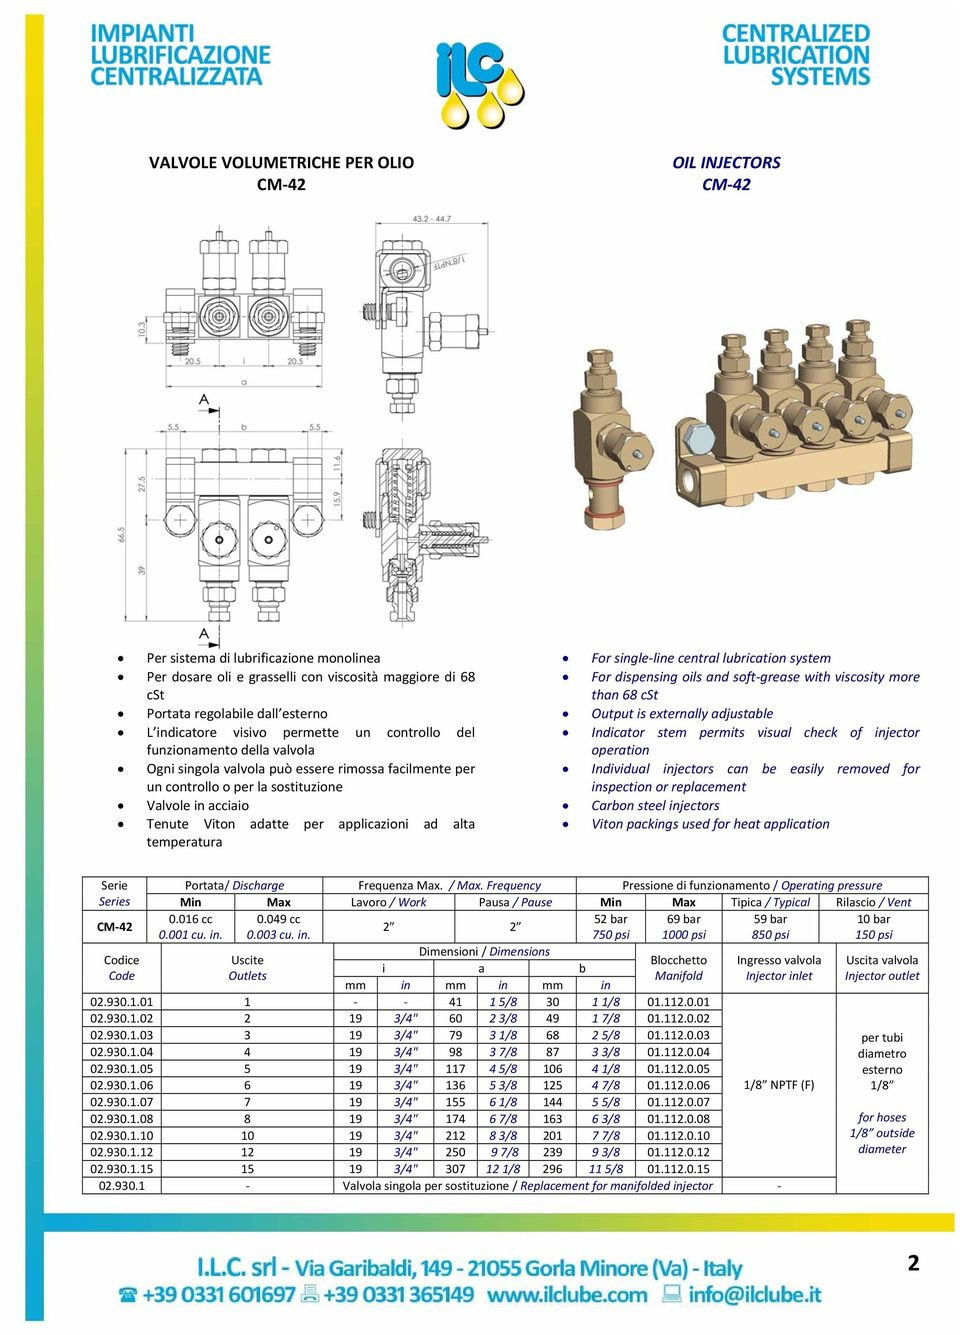 adatte per applicazioni ad alta temperatura For single line central lubrication system For dispensing oils and soft grease with viscosity more than 68 cst Output is externally adjustable Indicator